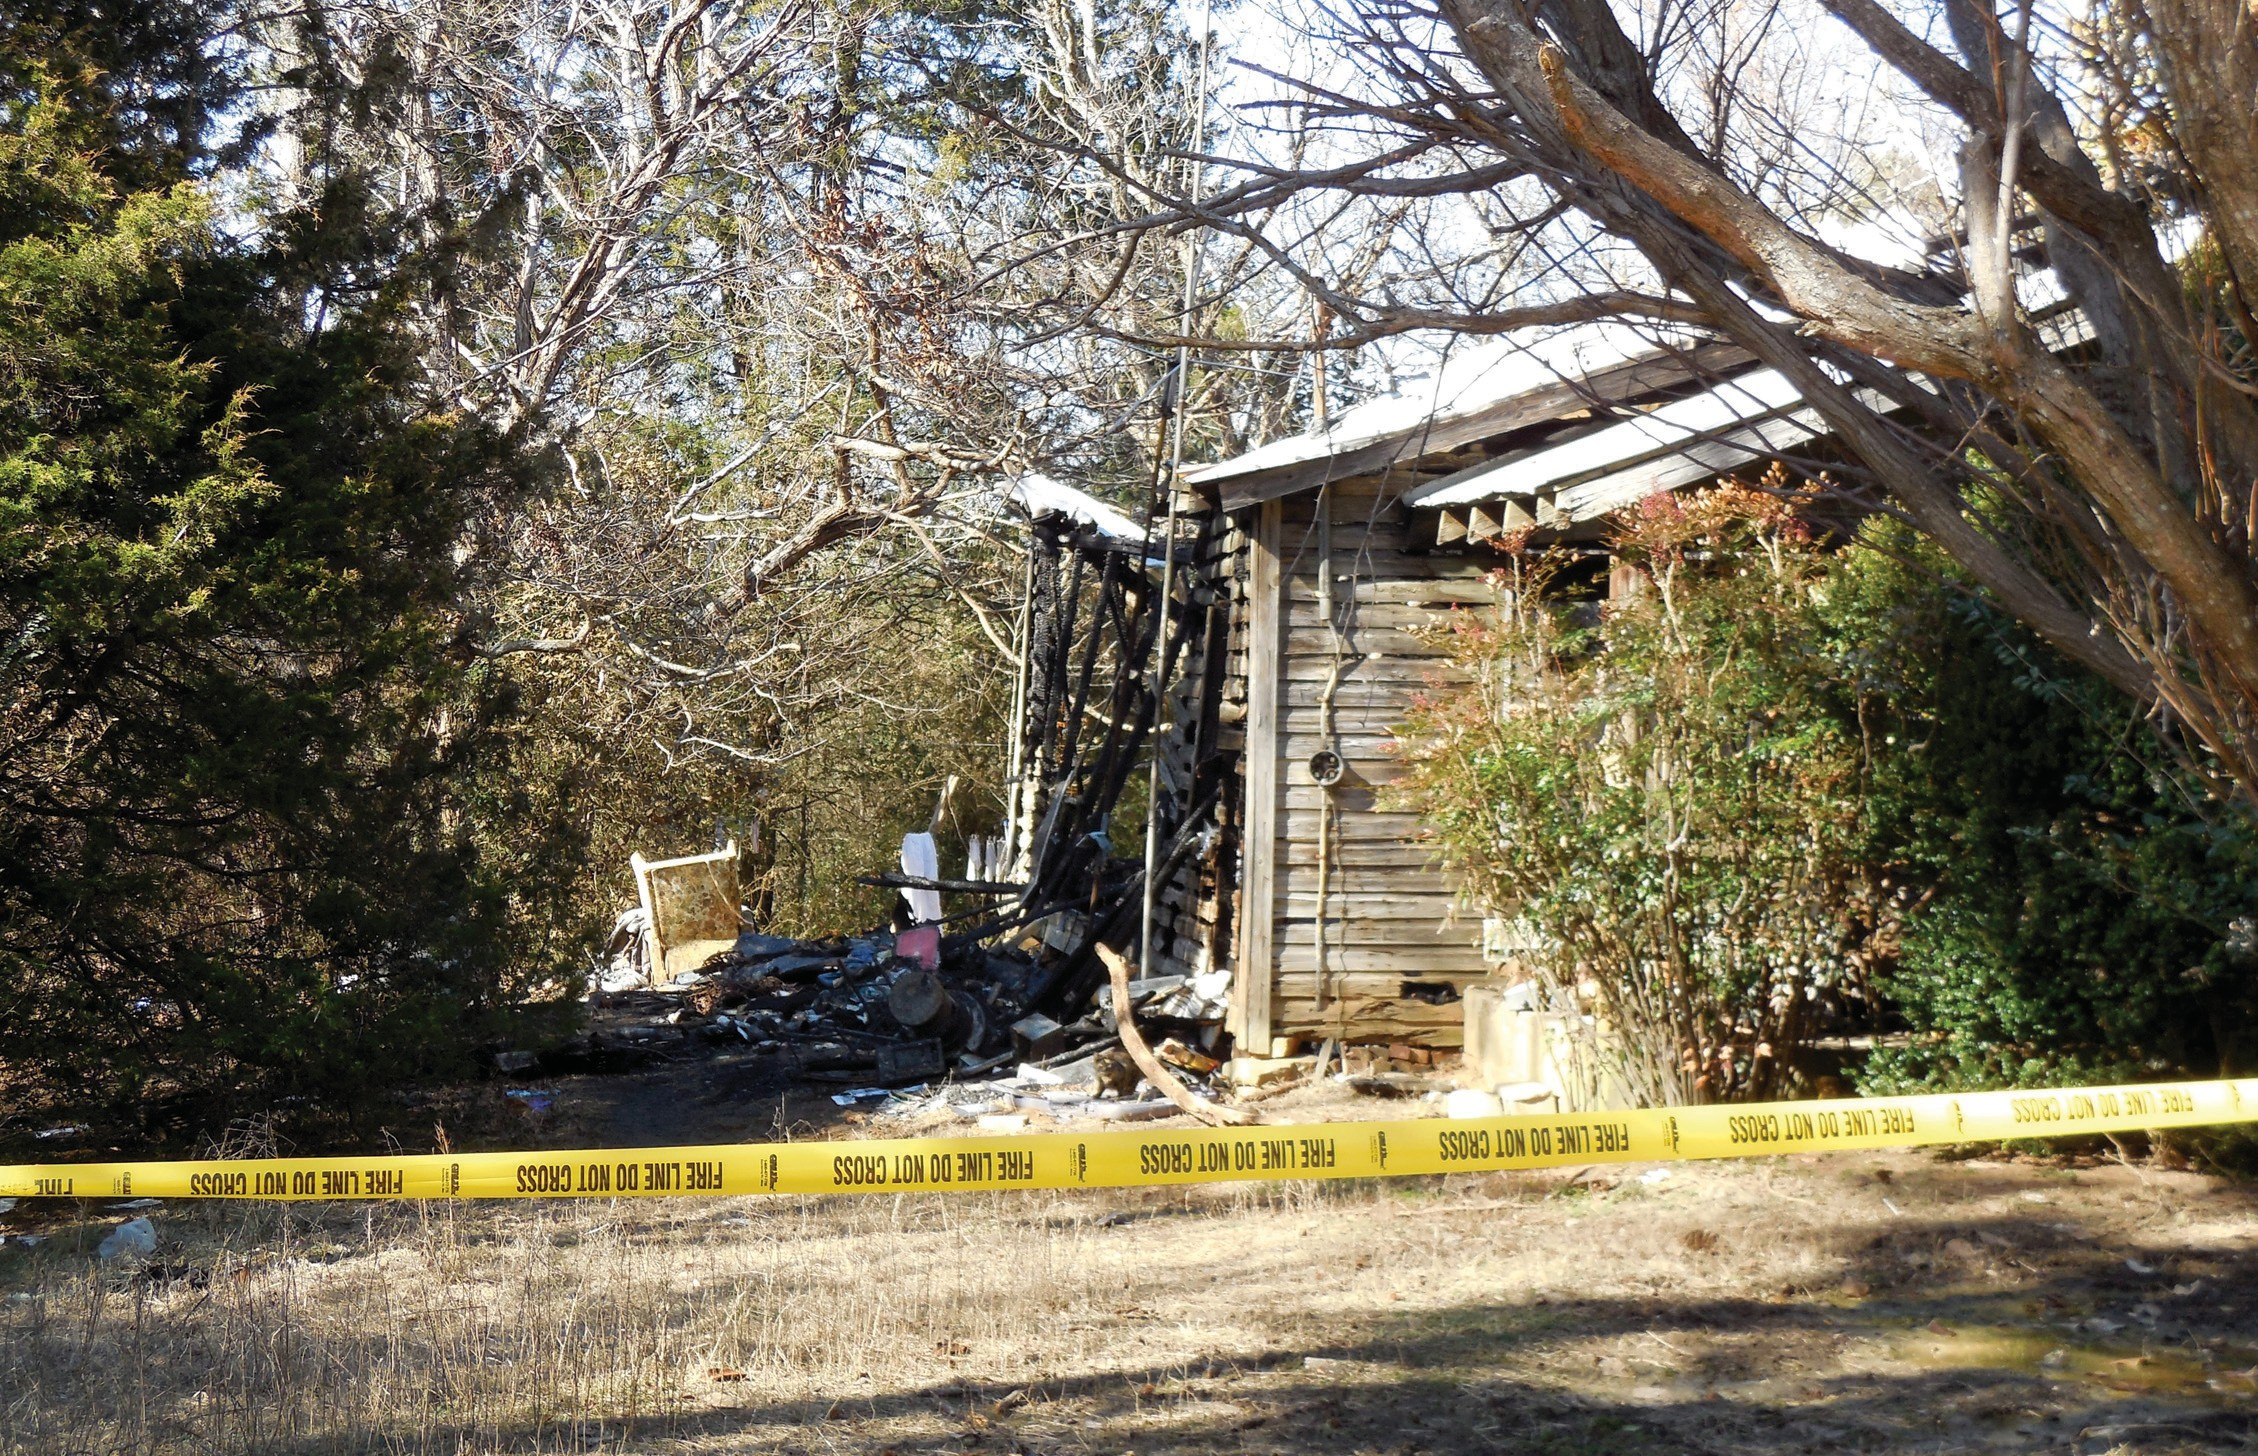 A body was found in this burned-out house on Ebell Road.